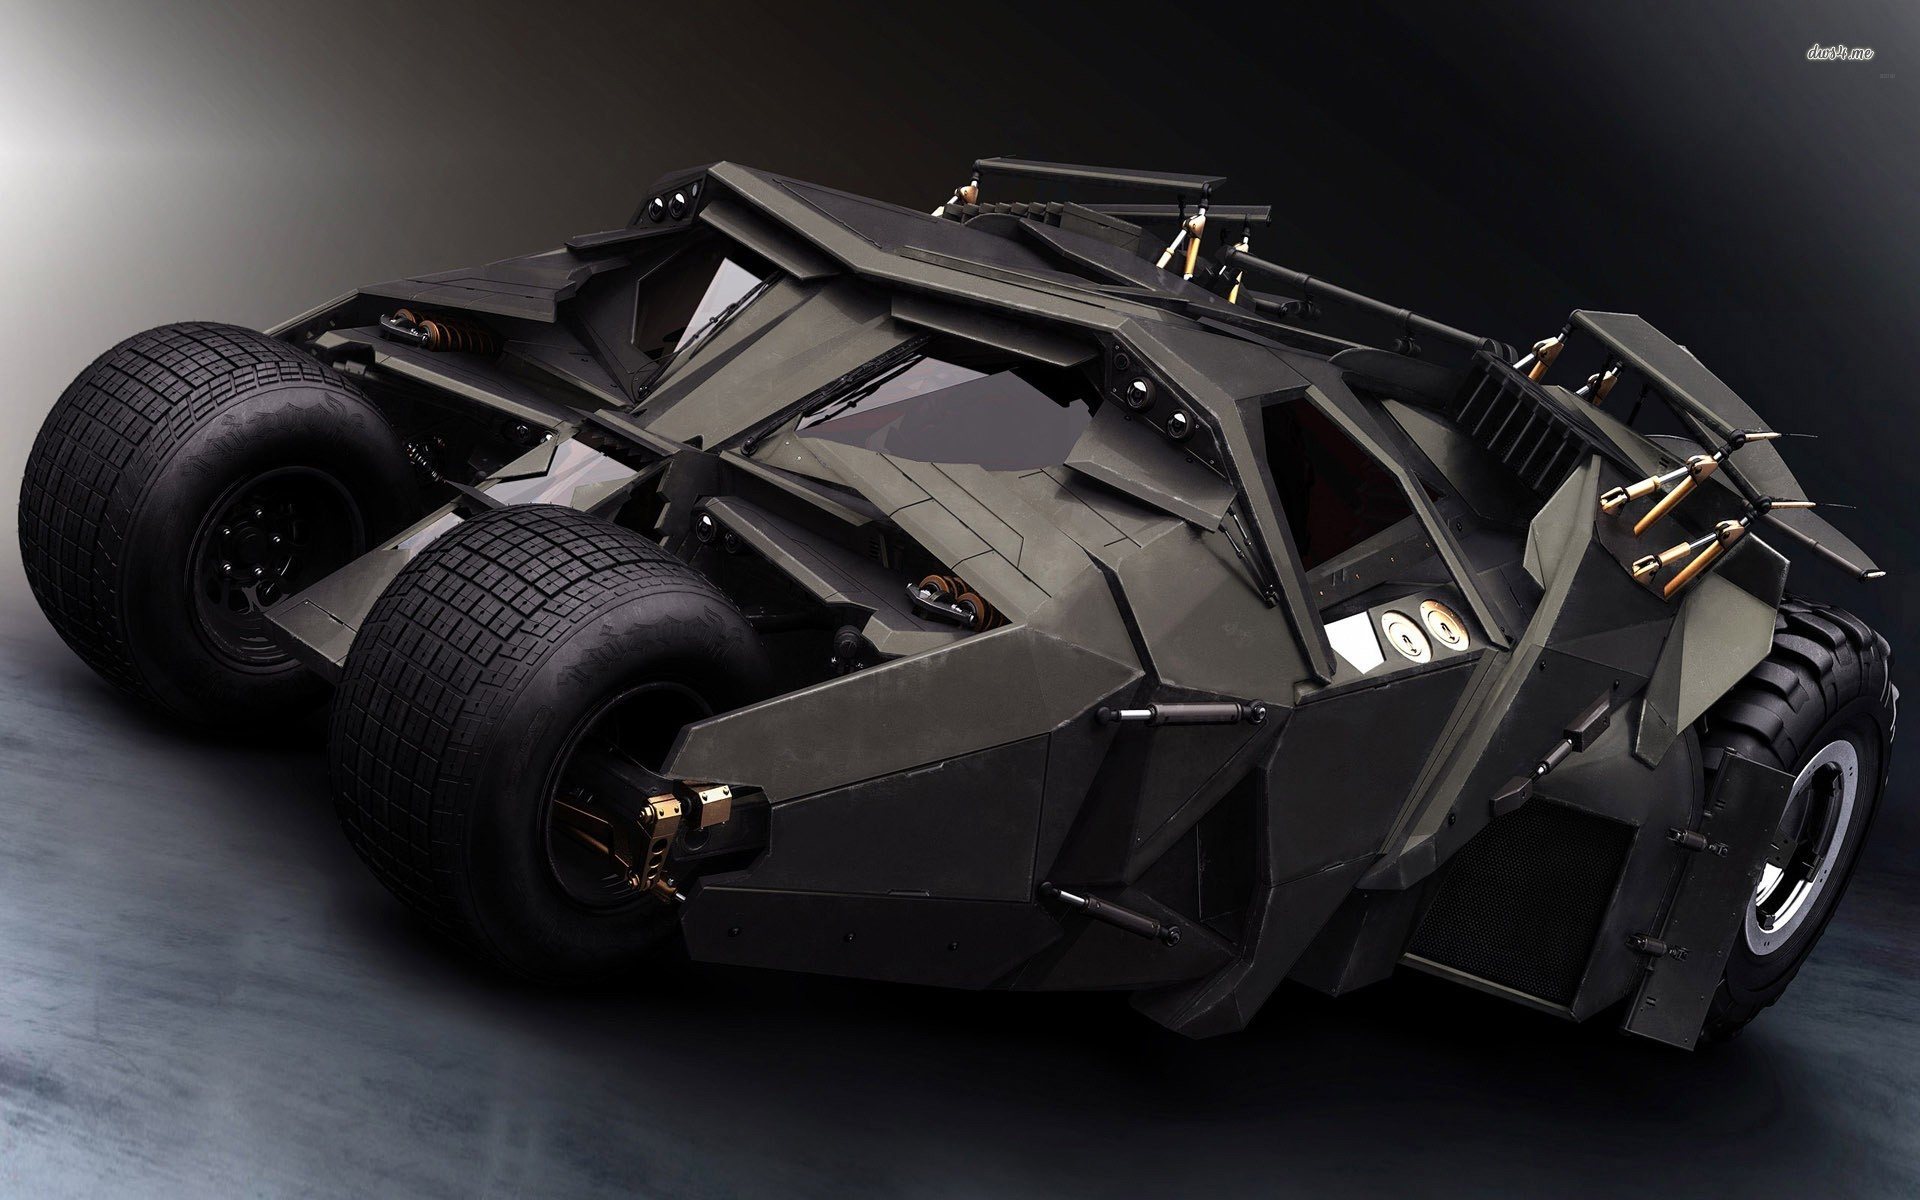 Batmobile   Batman wallpaper   817527 1920x1200